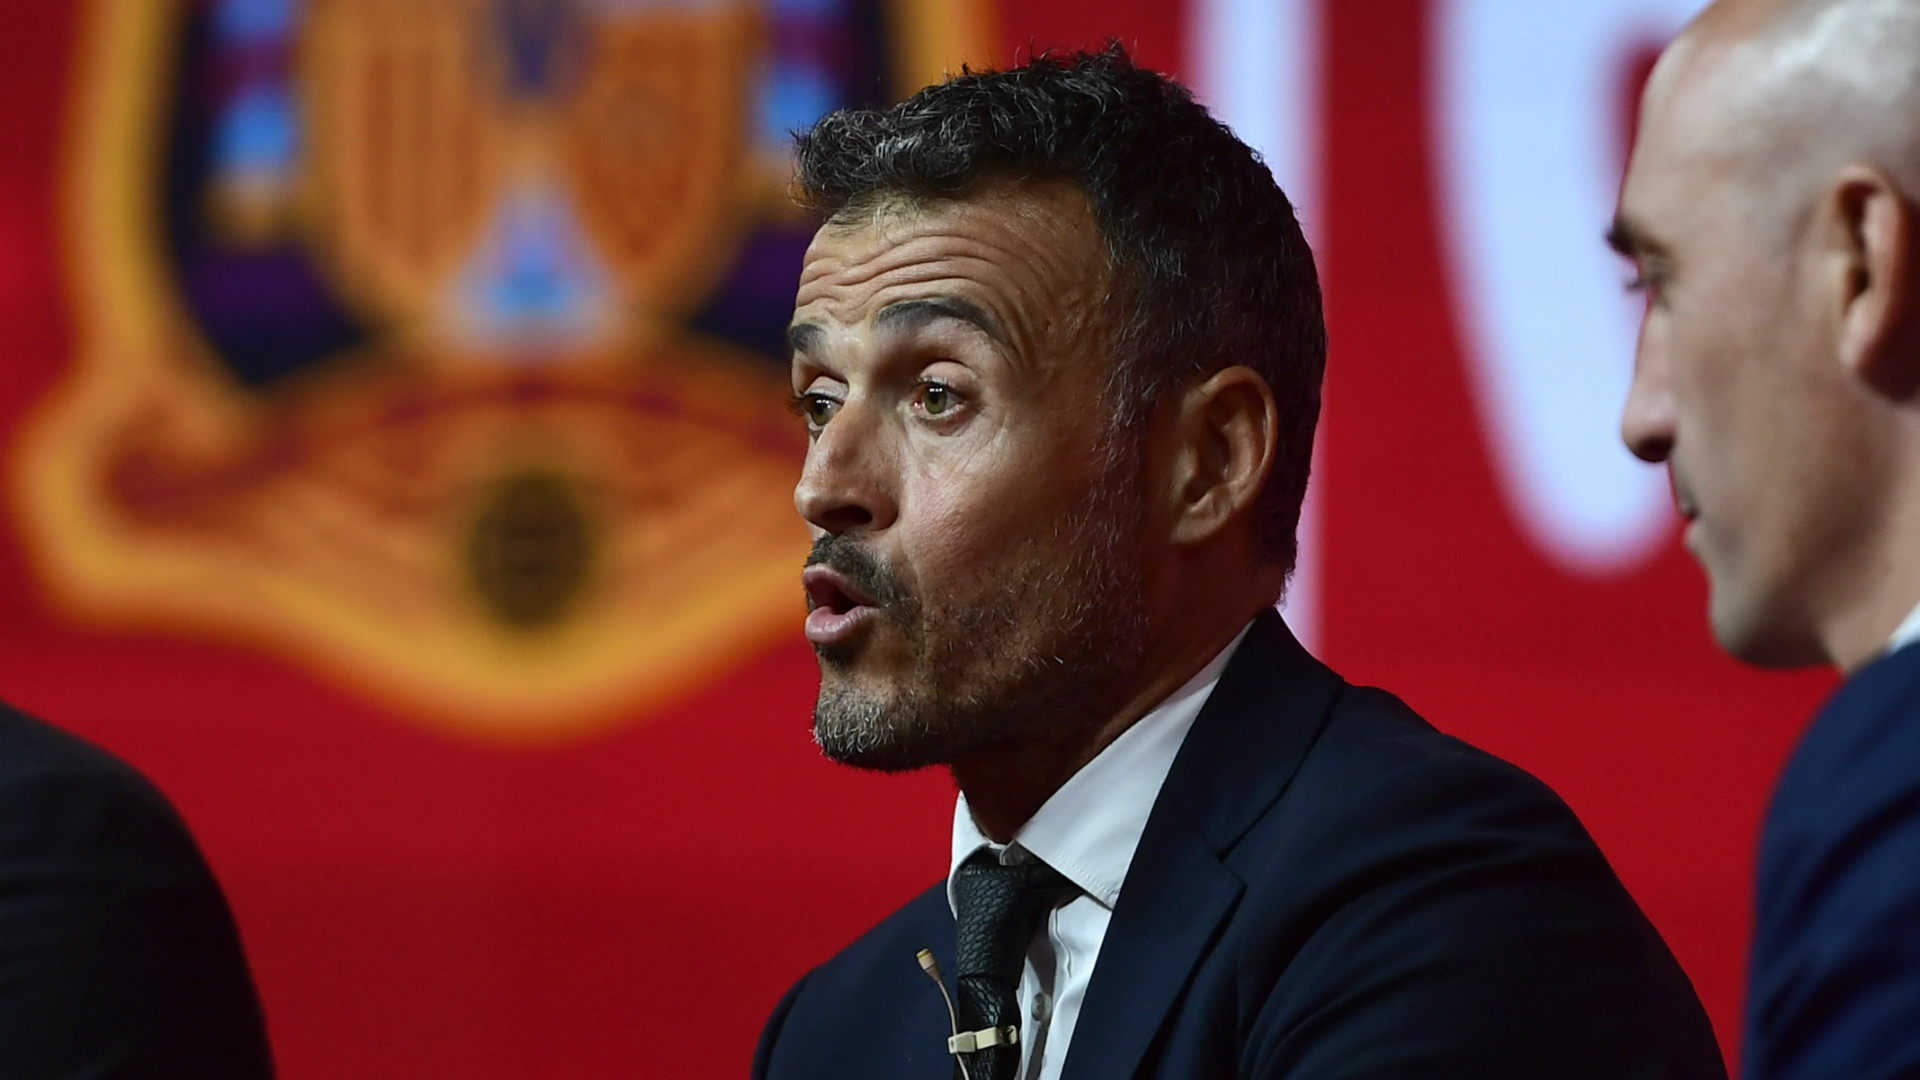 Luis Enrique wants unpredictable Spain